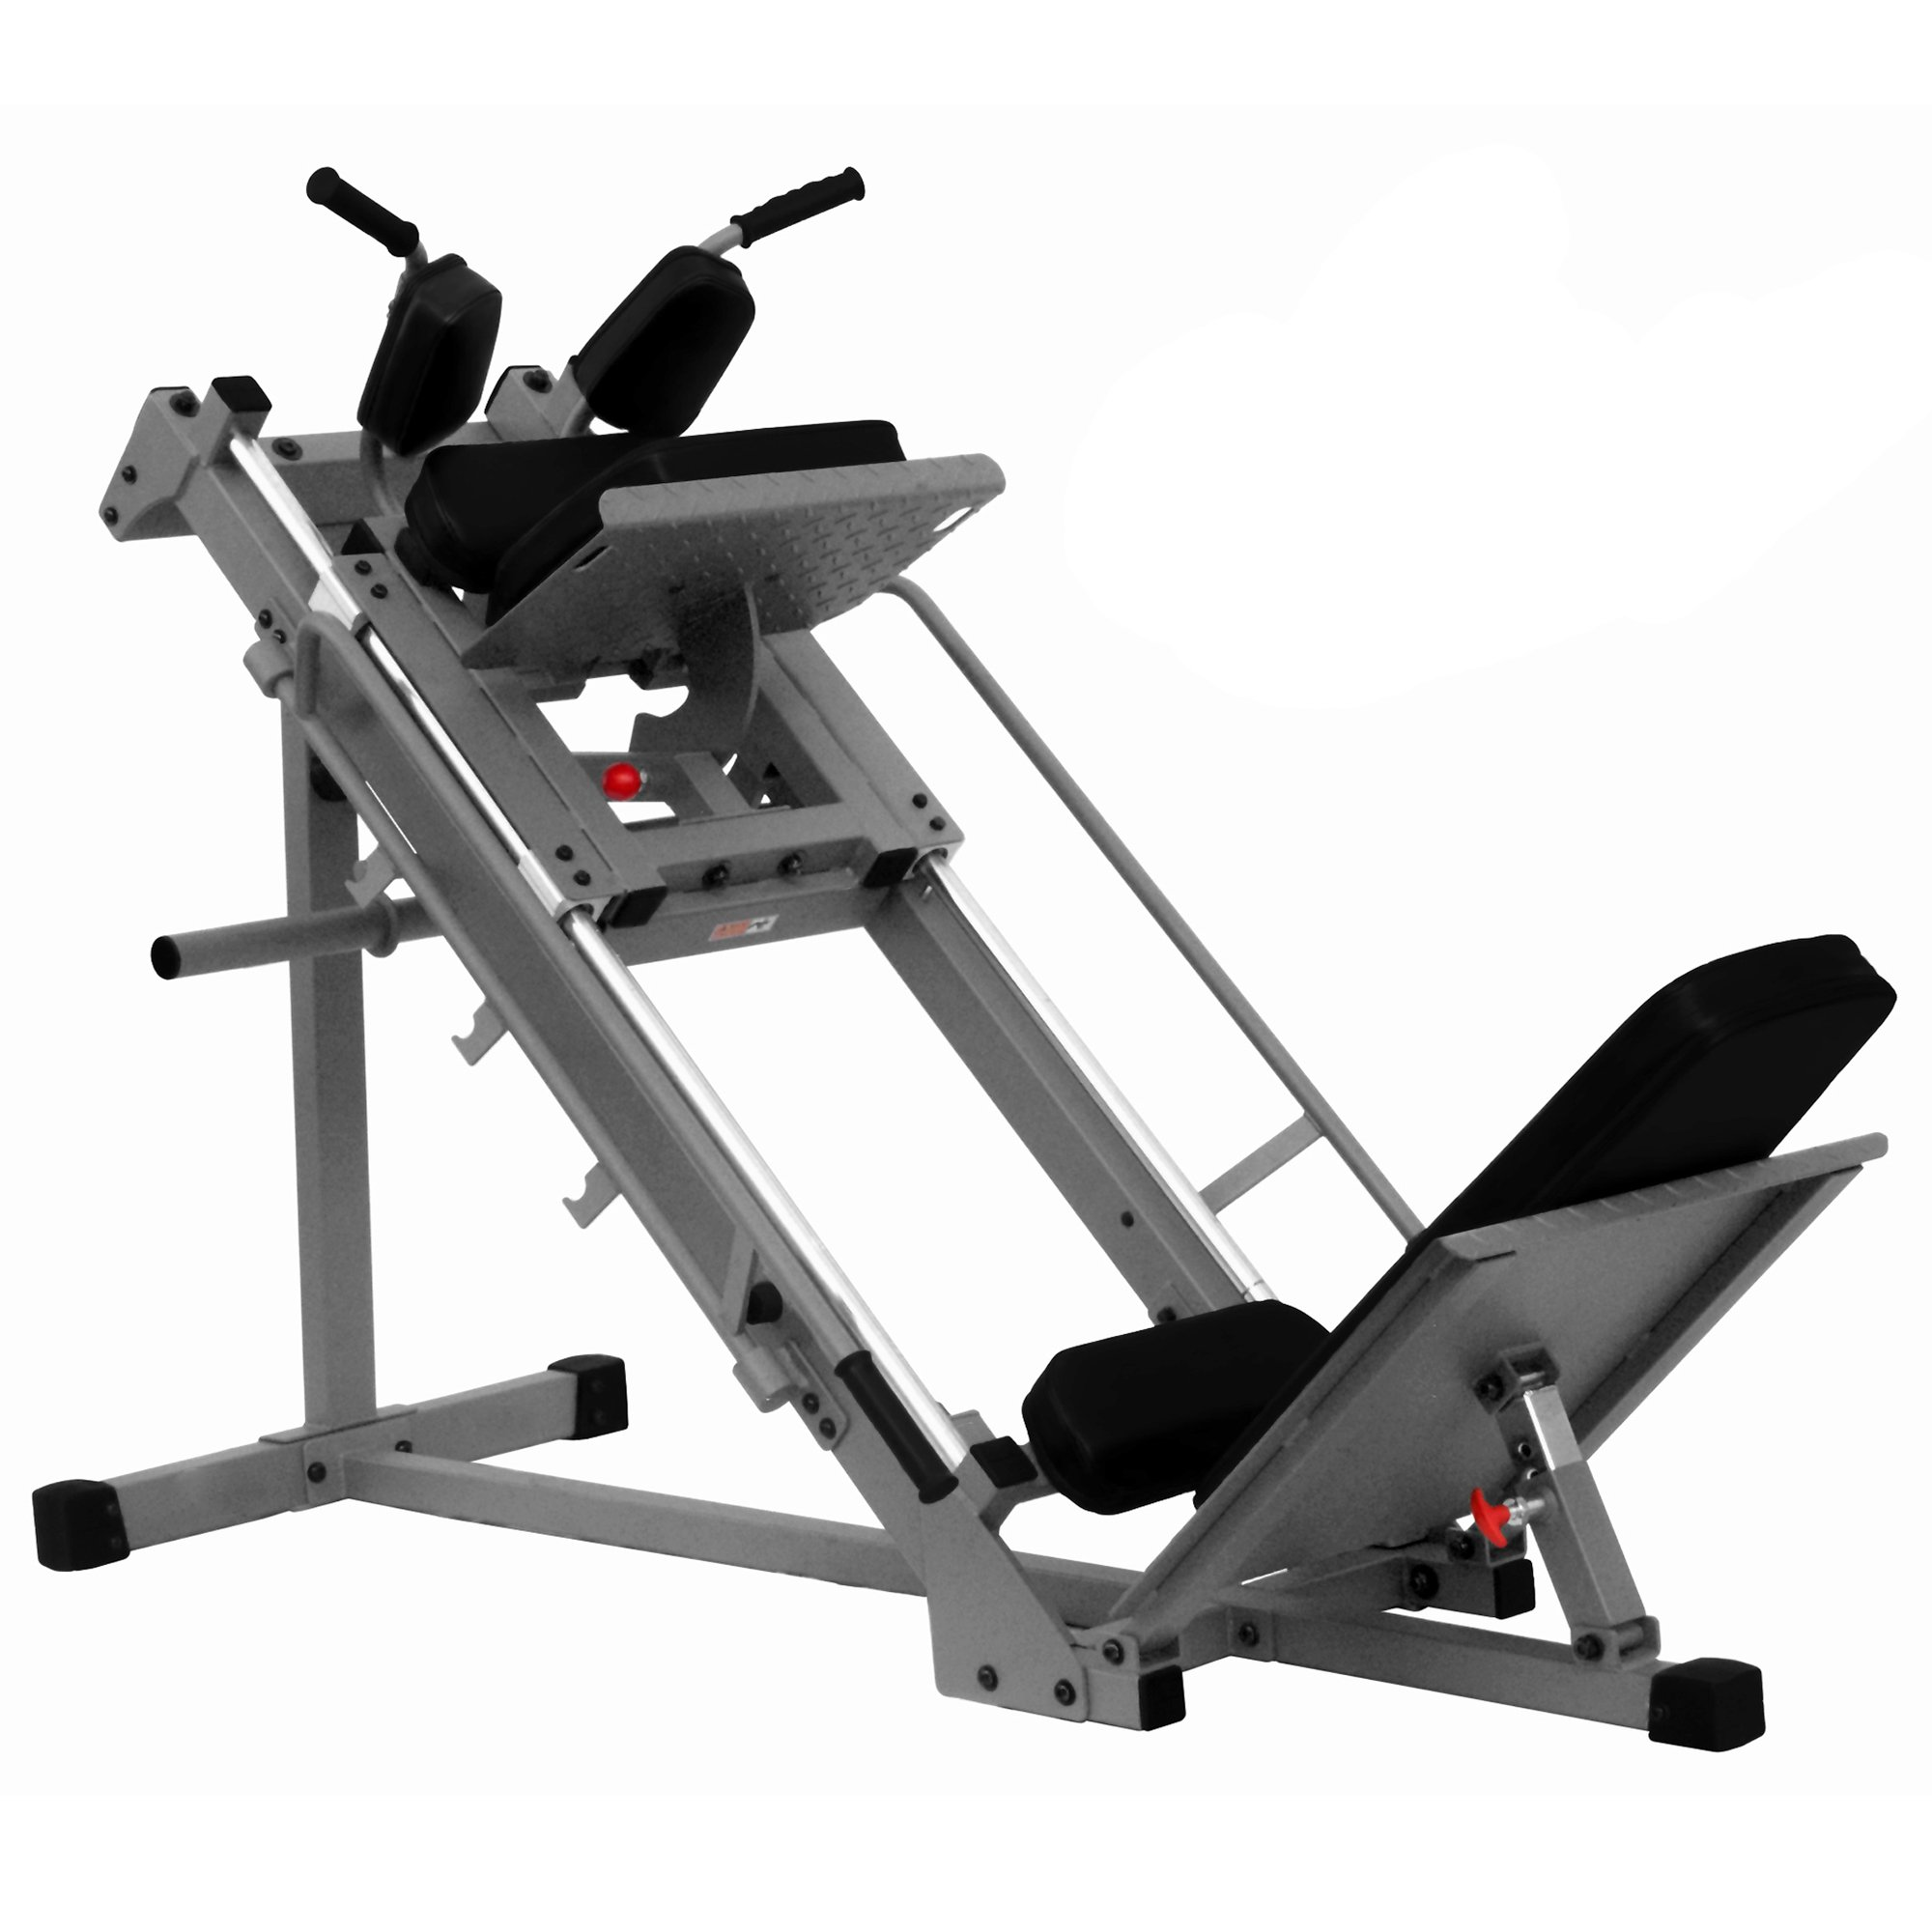 "XMark Seated Leg Press and Hack Squat With 1000 lb. Wgt Capacity - Built Tough 11 gauge 2'' x 3'' and 2"" x 2"" steel mainframe"